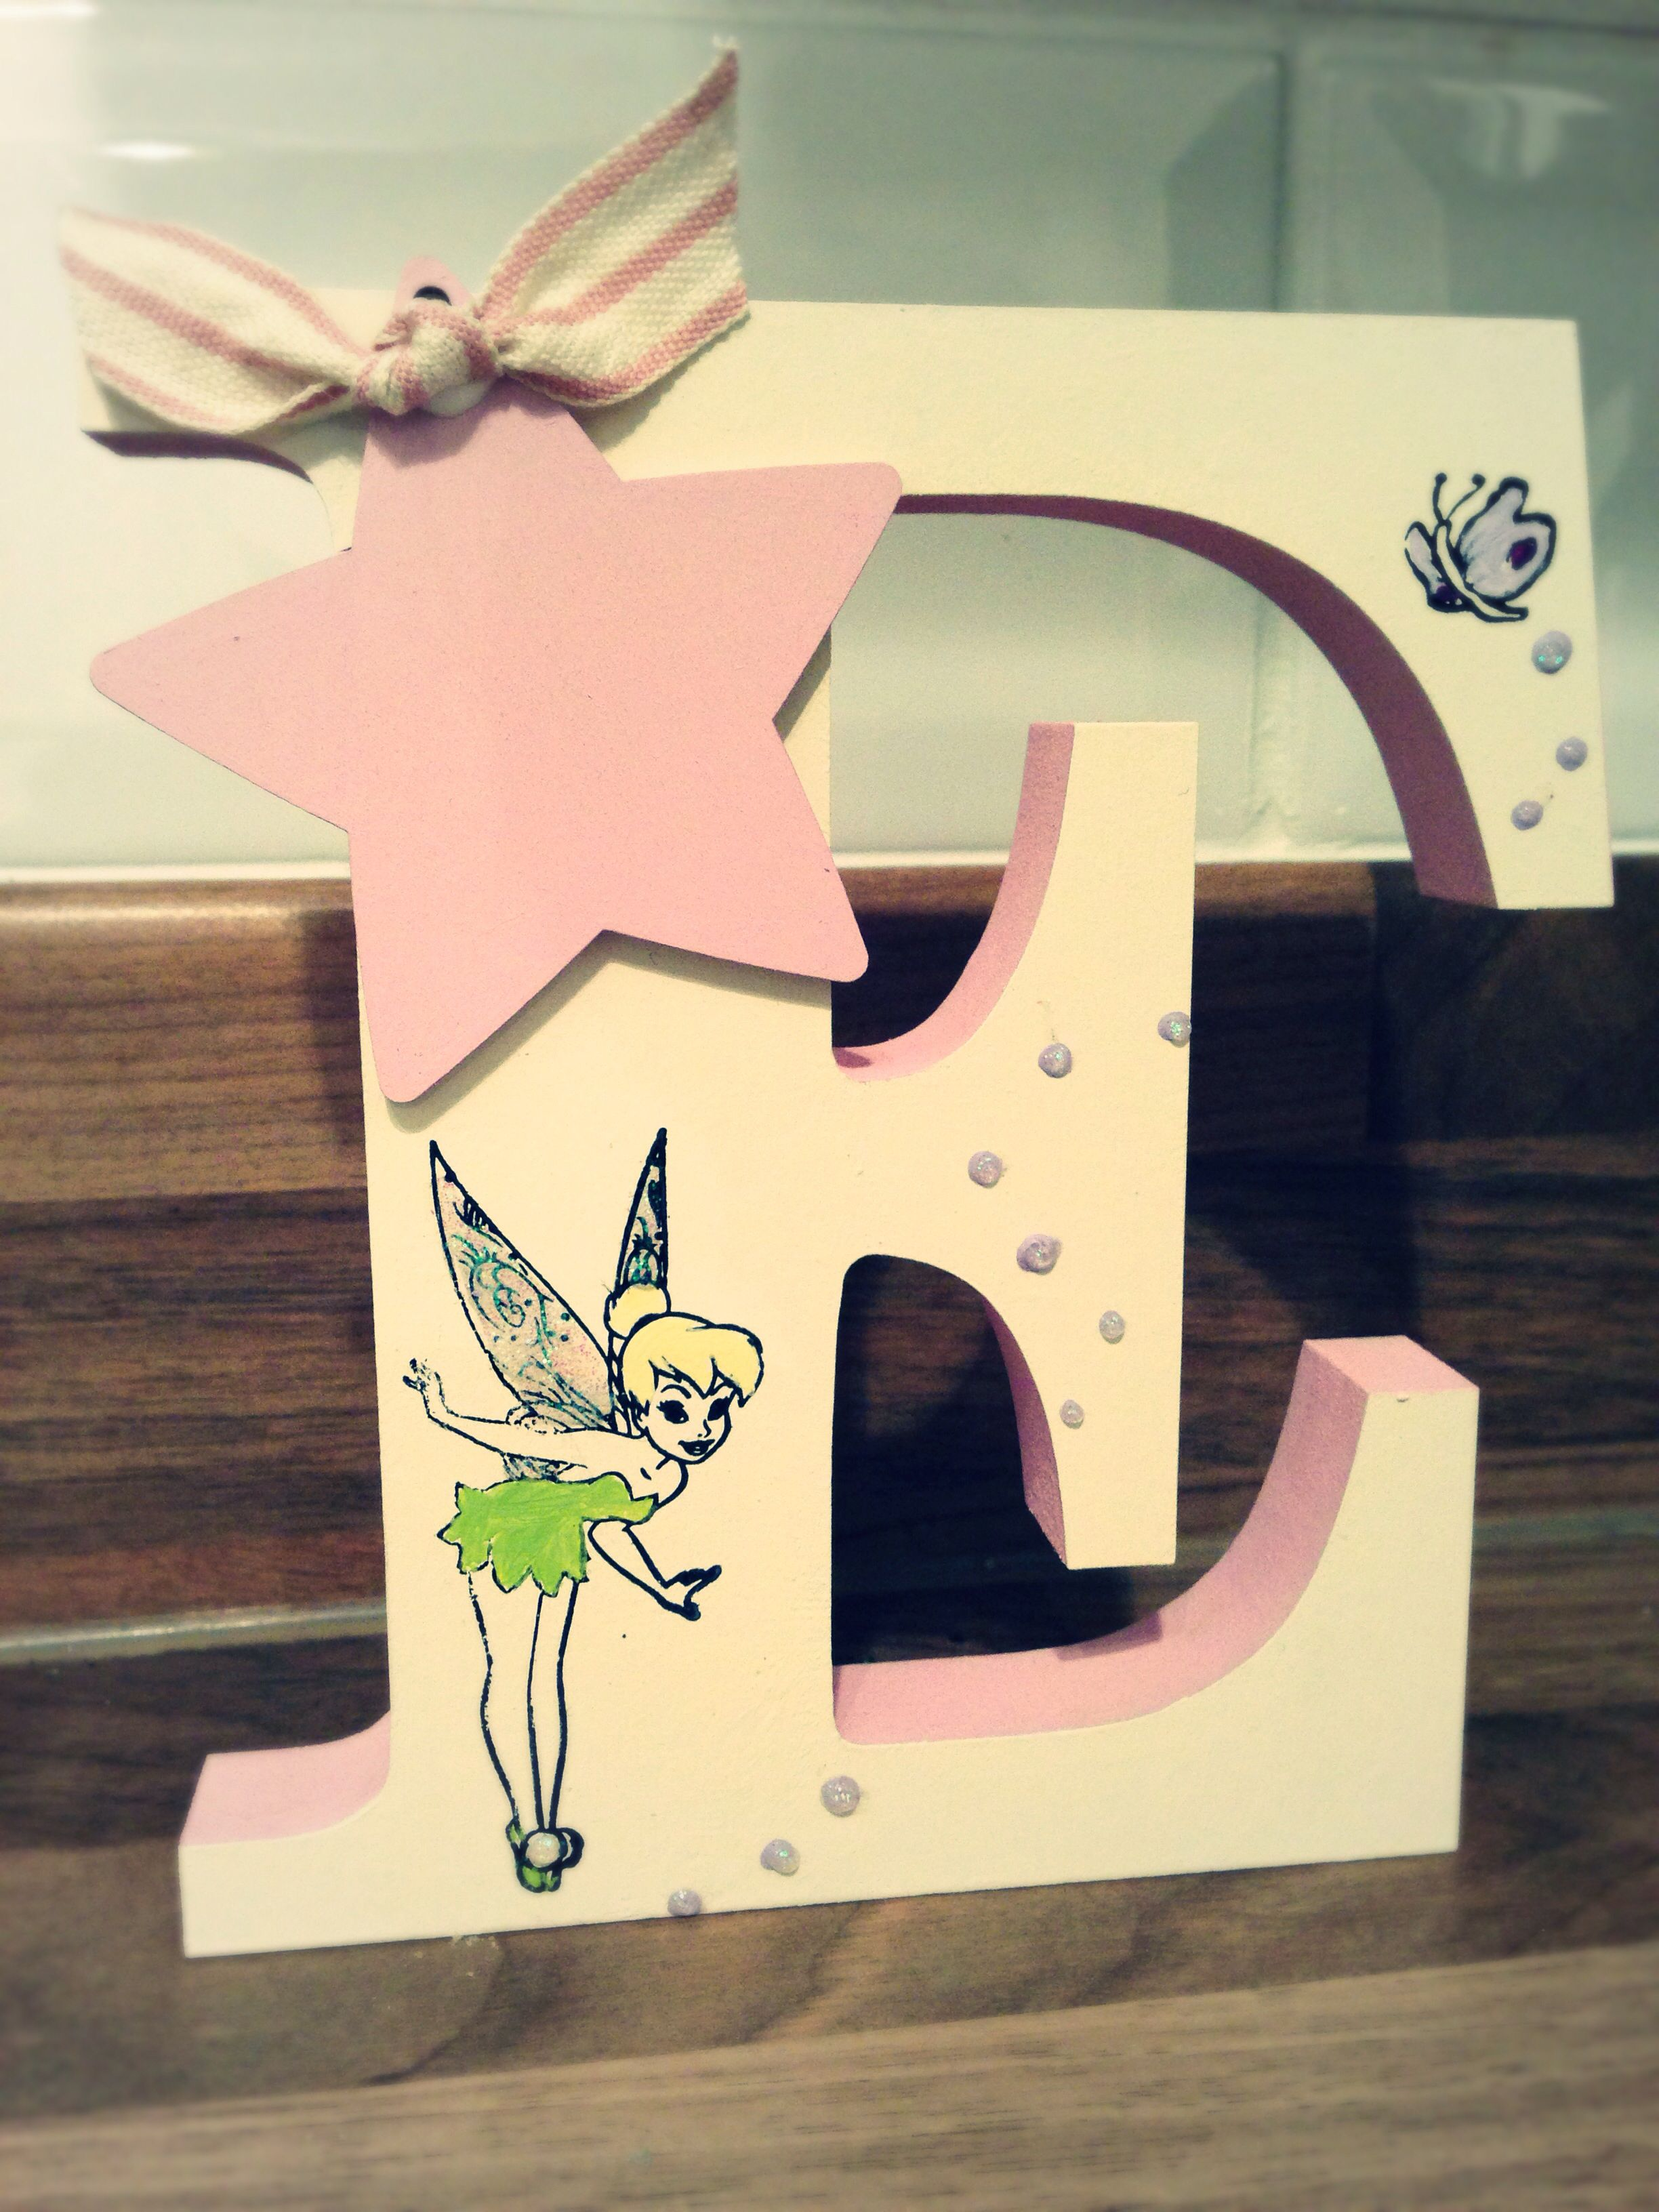 tinkerbell free standing wooden letters ready to be personalised also available in minnie mouse